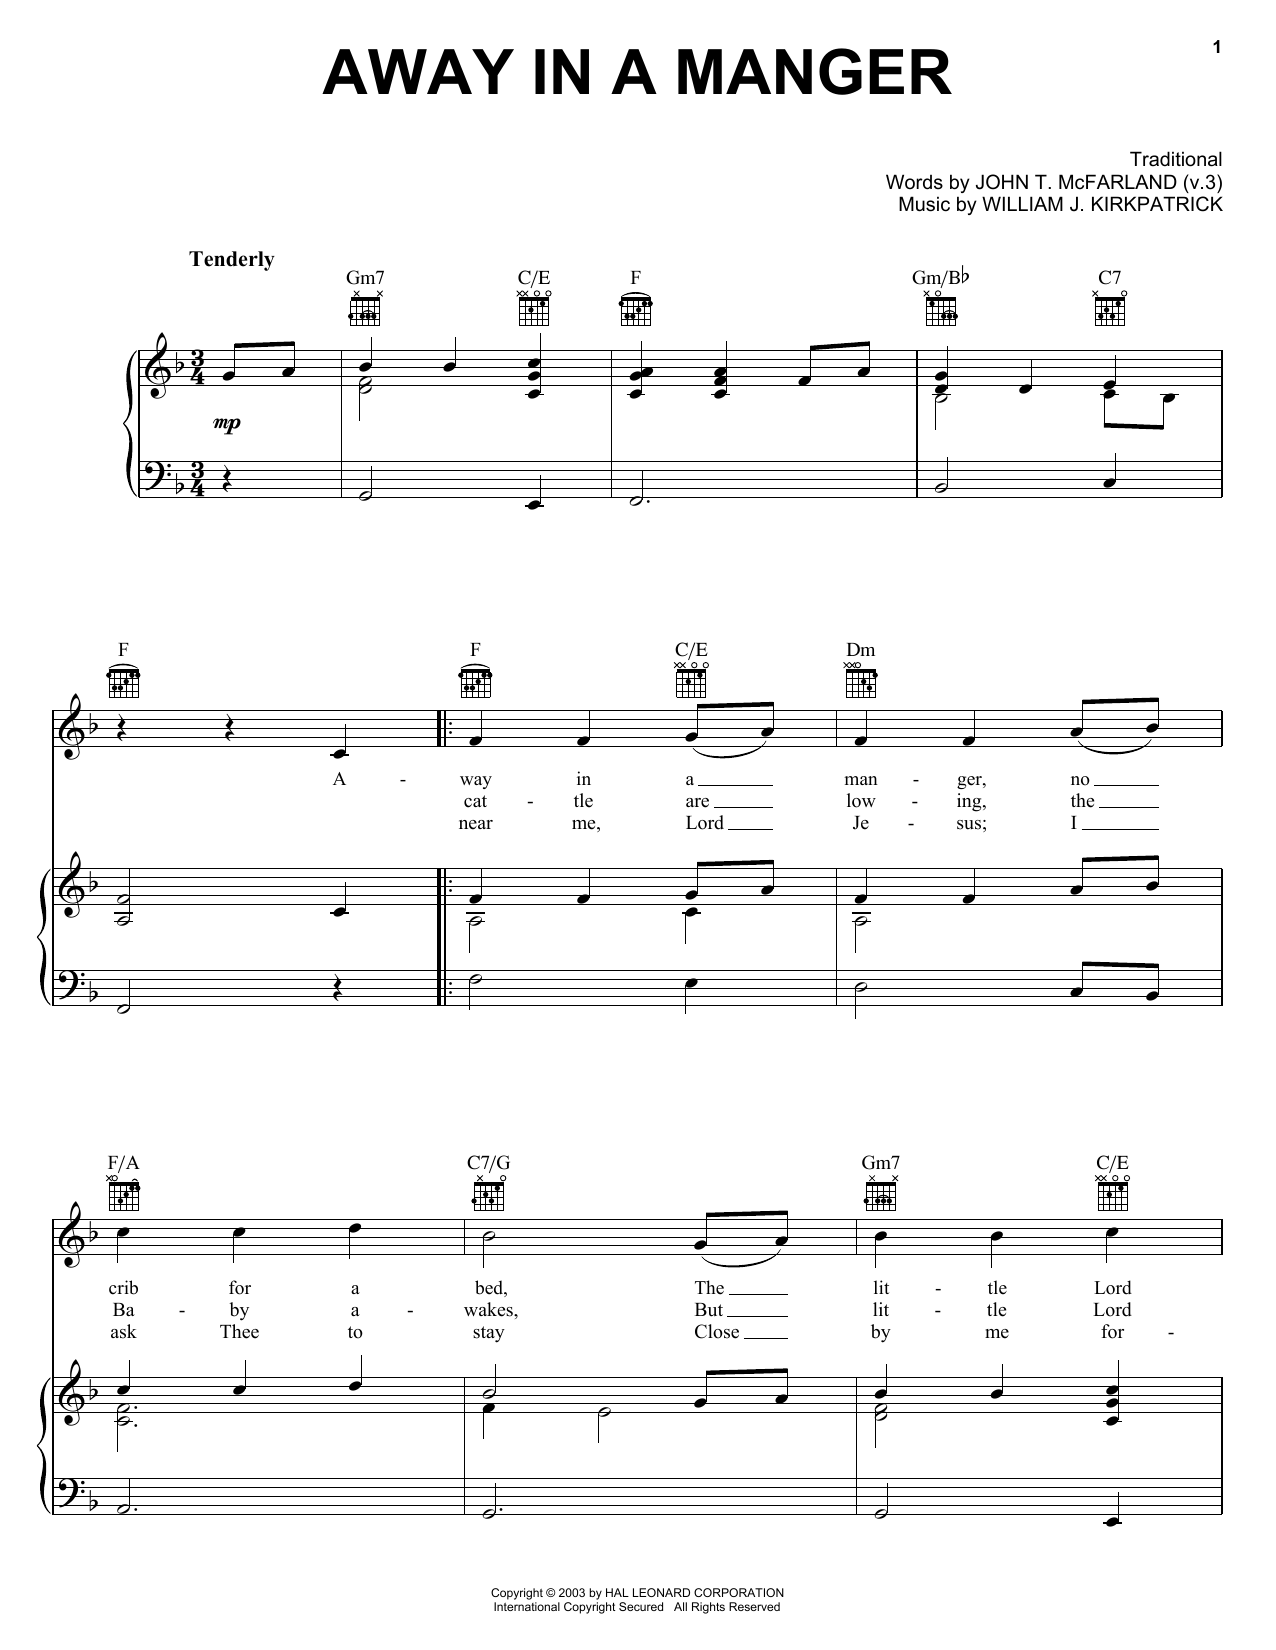 Christmas Carol Away In A Manger (jazzy arrangement) sheet music notes printable PDF score